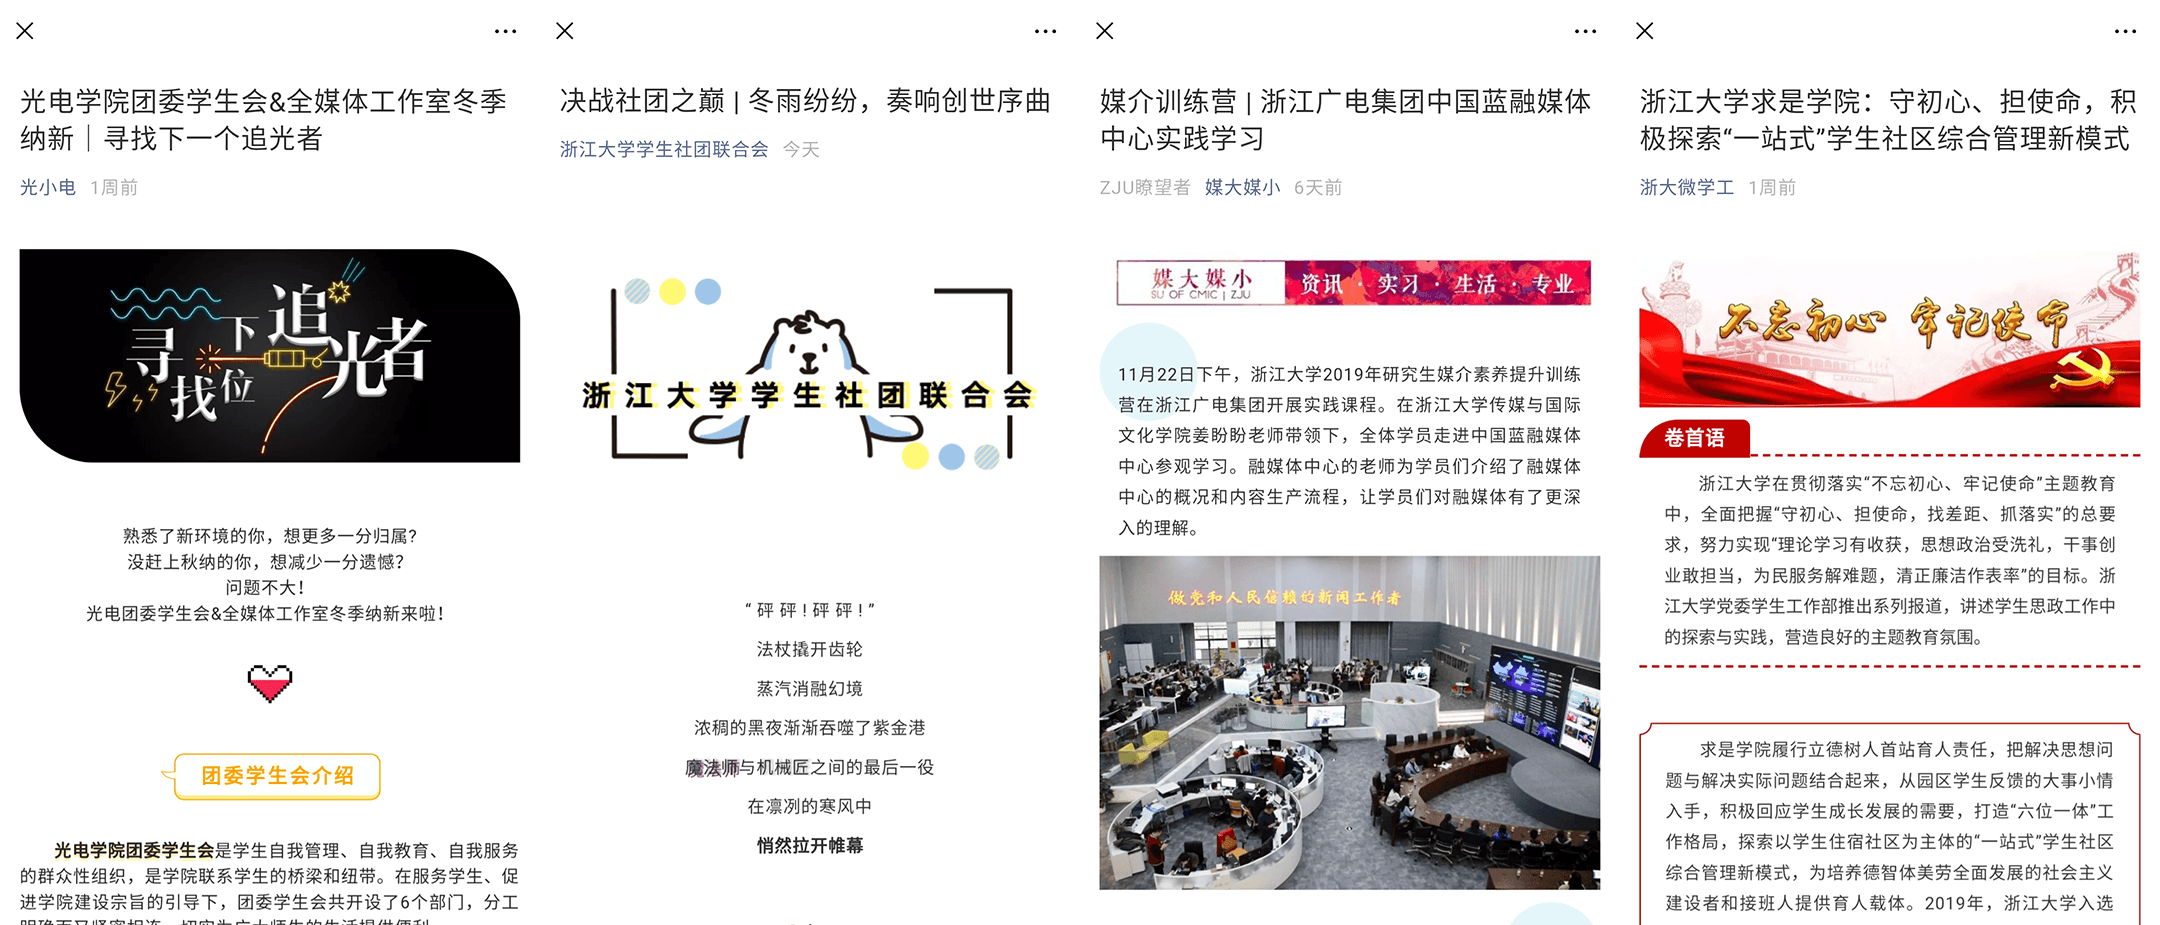 four-kinds-of-articles-in-wechat.png